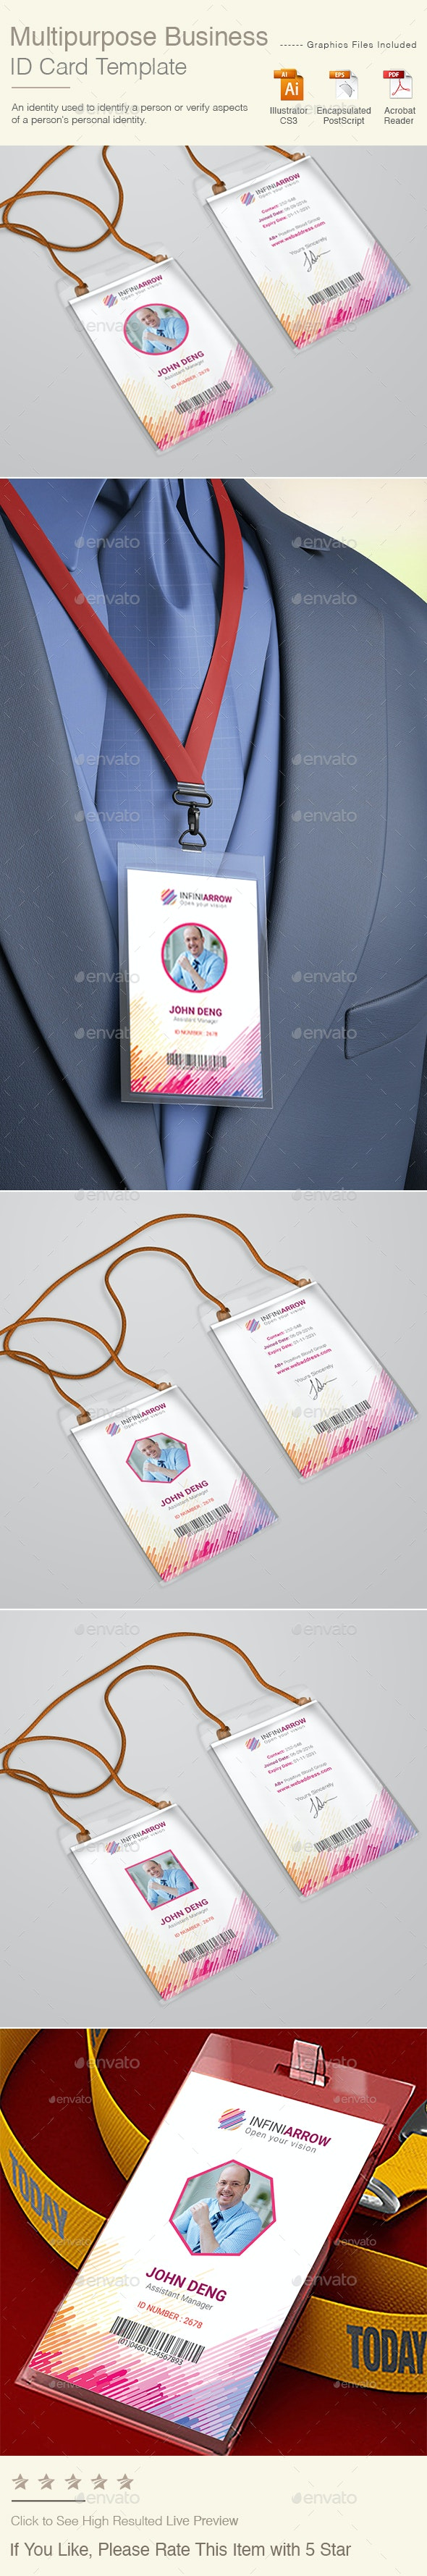 Multipurpose Business ID Card - Miscellaneous Print Templates